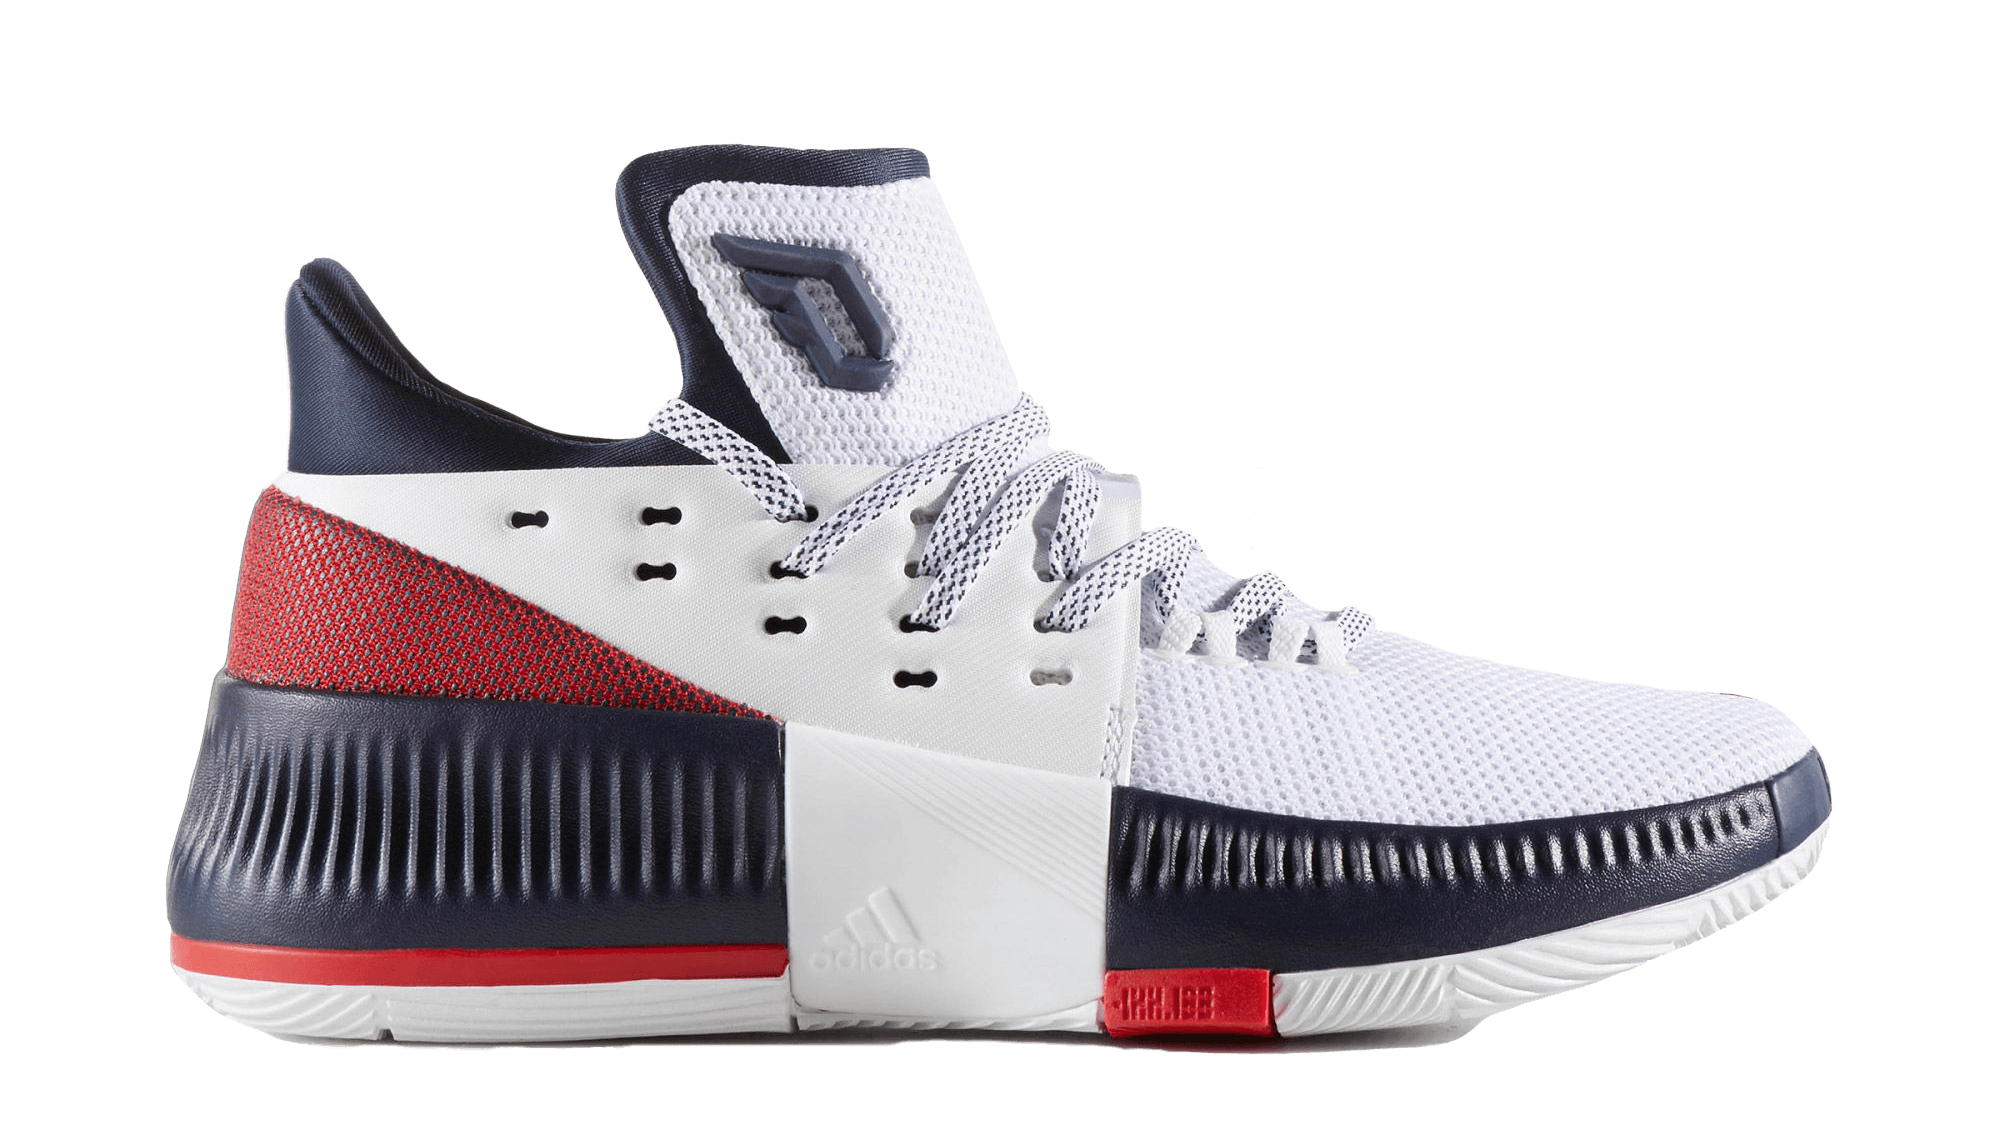 821b56ad84c9 Adidas Dame 3 Performance Review